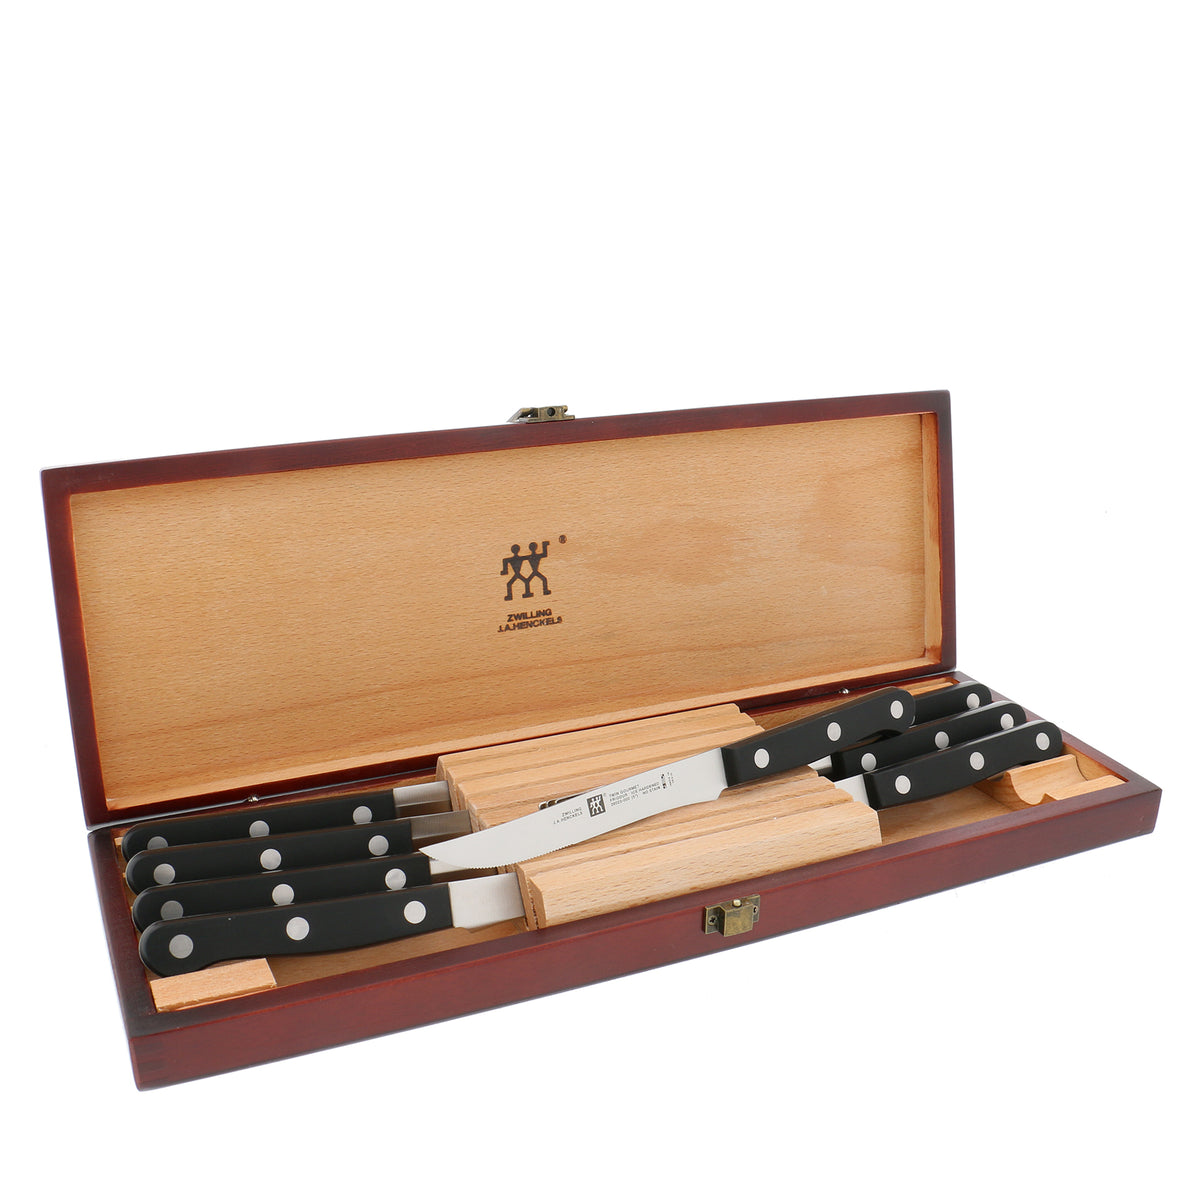 Zwilling Twin Gourmet Classic Steak Knife Set With Wood Case, Set of 8